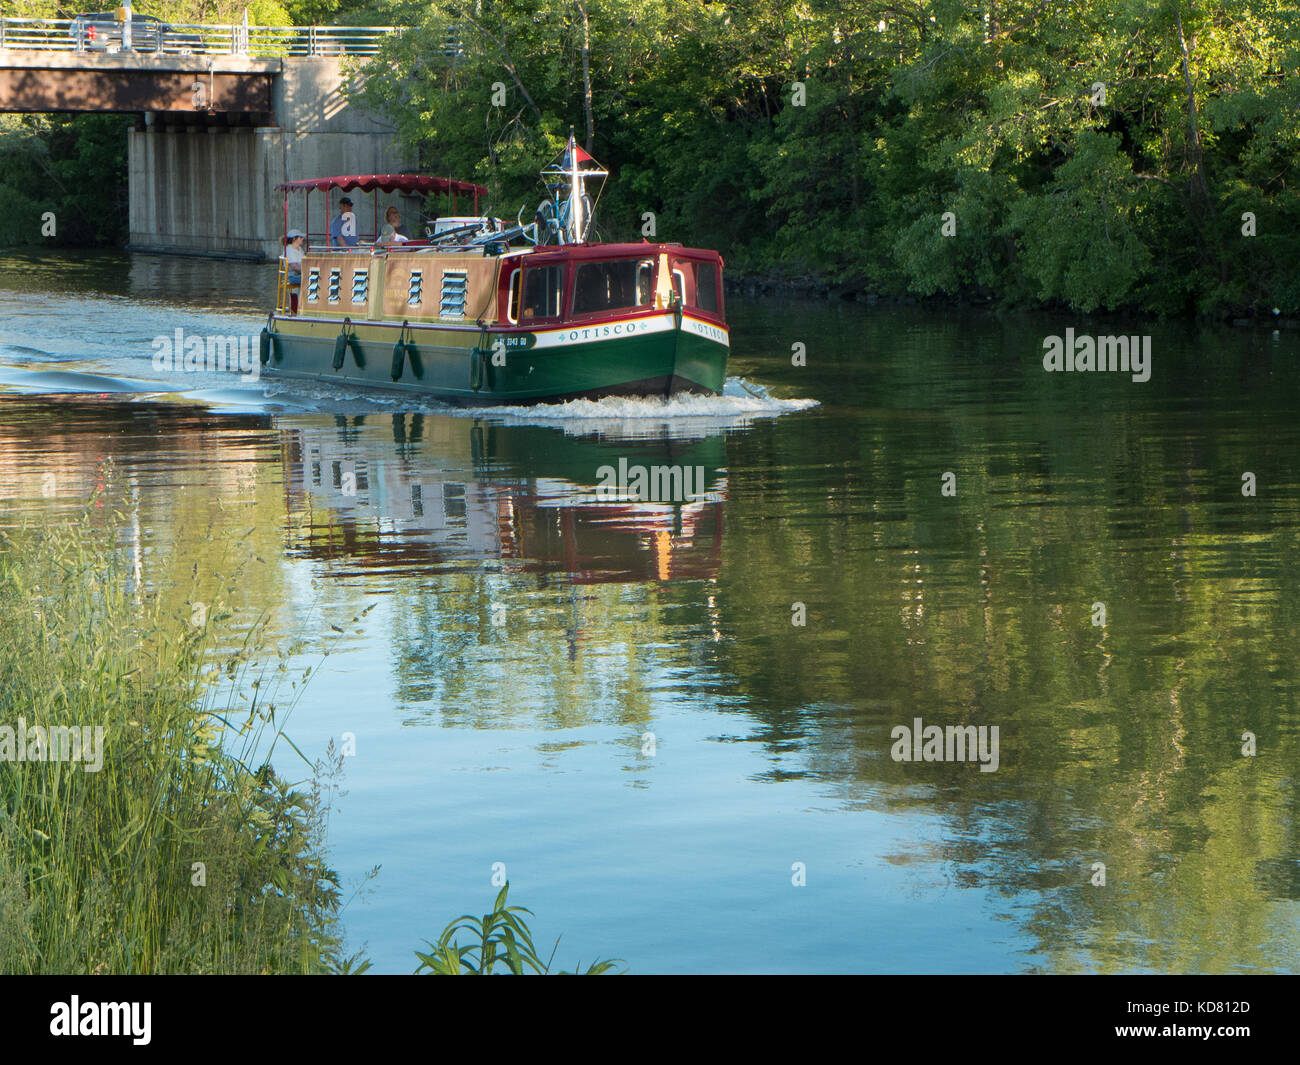 Houseboat Rental Stock Photos Amp Houseboat Rental Stock